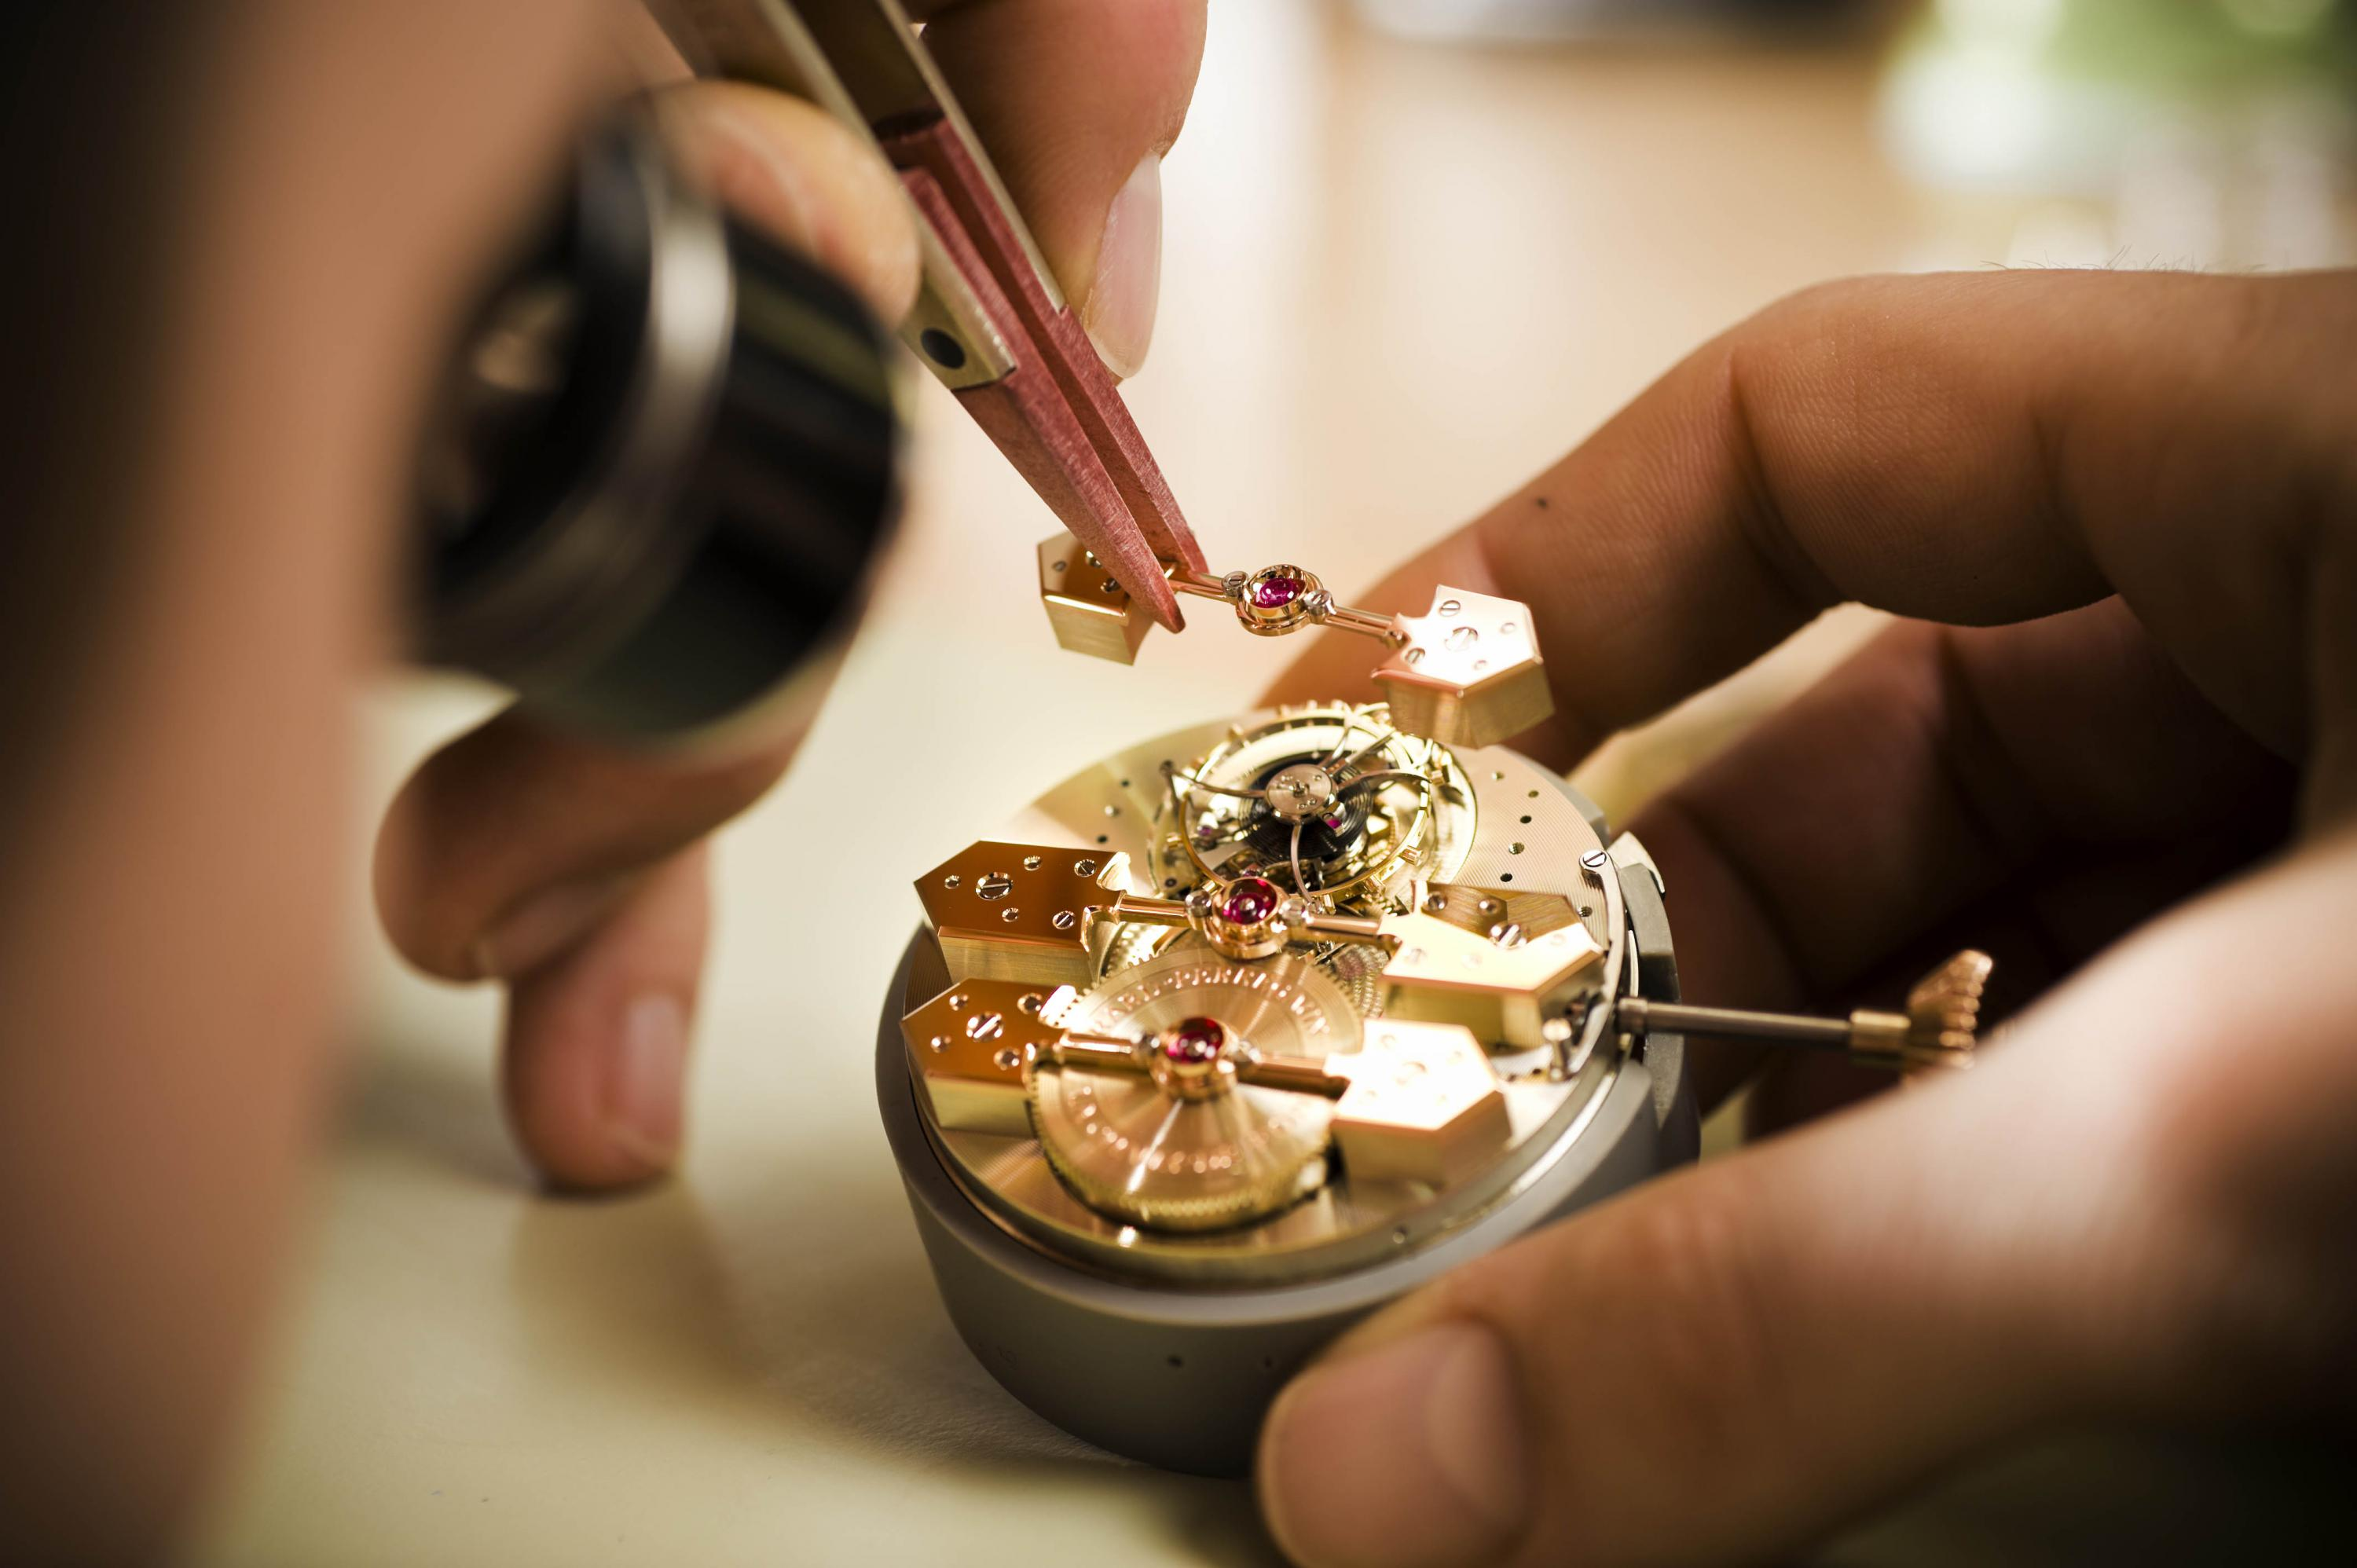 The Detailed Watchmaking Art - Watchmaker Detail horlogerie The Detailed Watchmaking Art in Haute Horlogerie The Detailed Watchmaking Art Watchmaker Detail